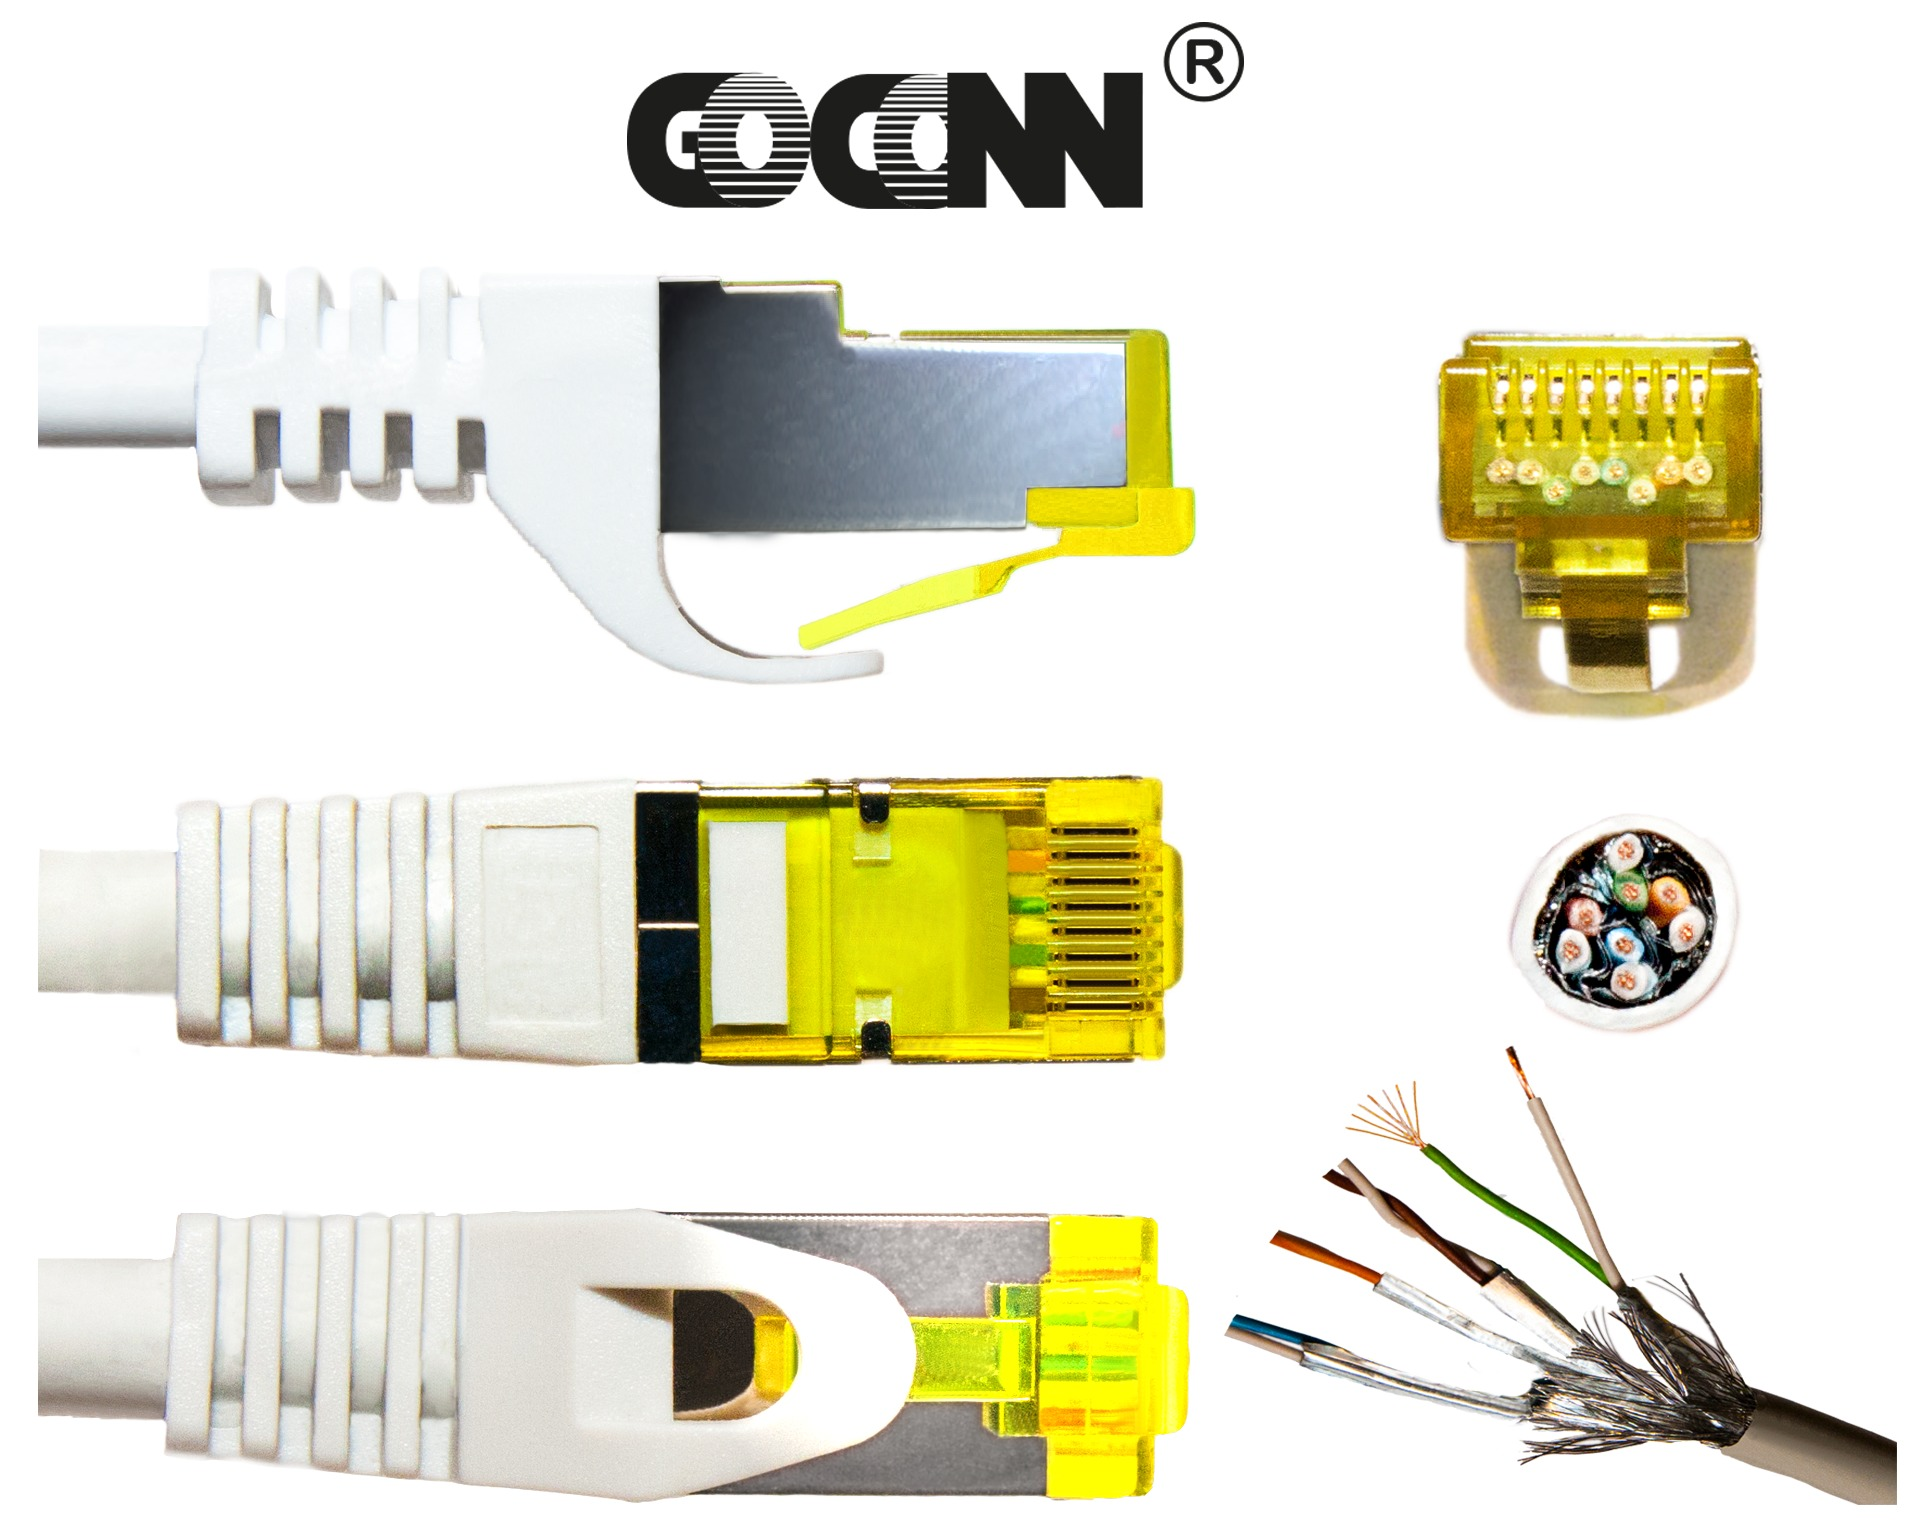 GoConn Patchkabel mit Cat7 Rohkabel 15m orange S/FTP PiMF 500MHz 2xgeschirmt